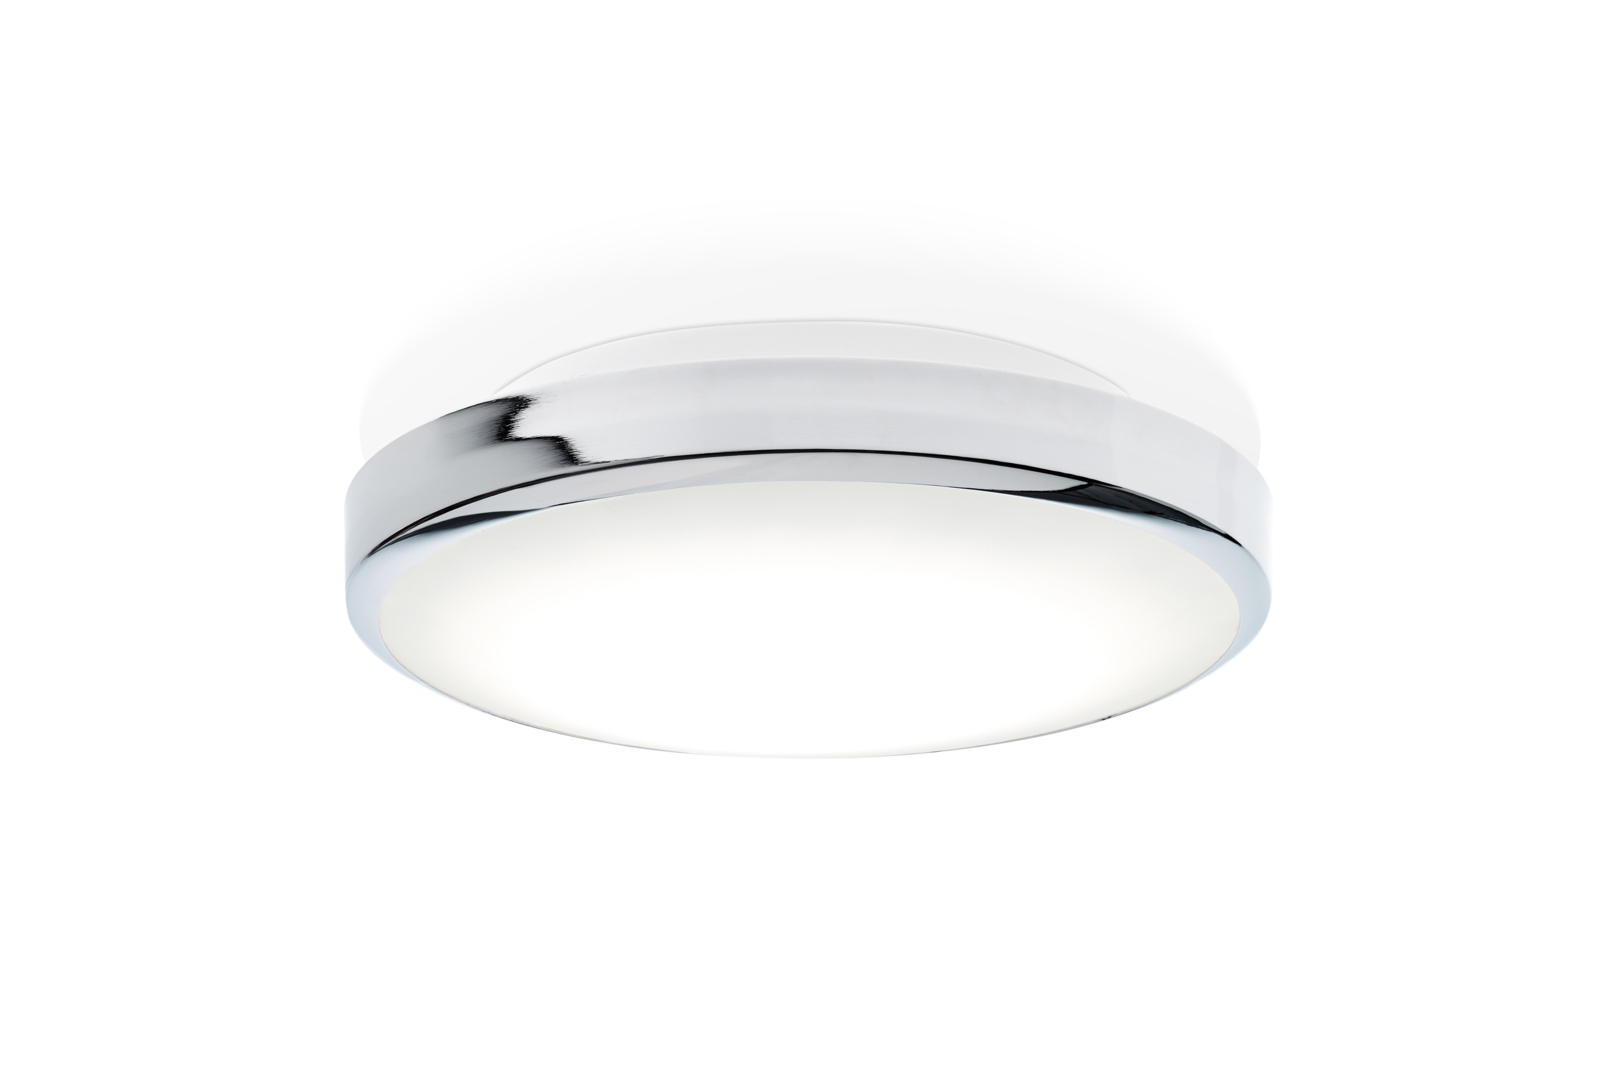 Decor Walther 0219000 DW-Glow 28 N LED Ceiling Light - Chrome